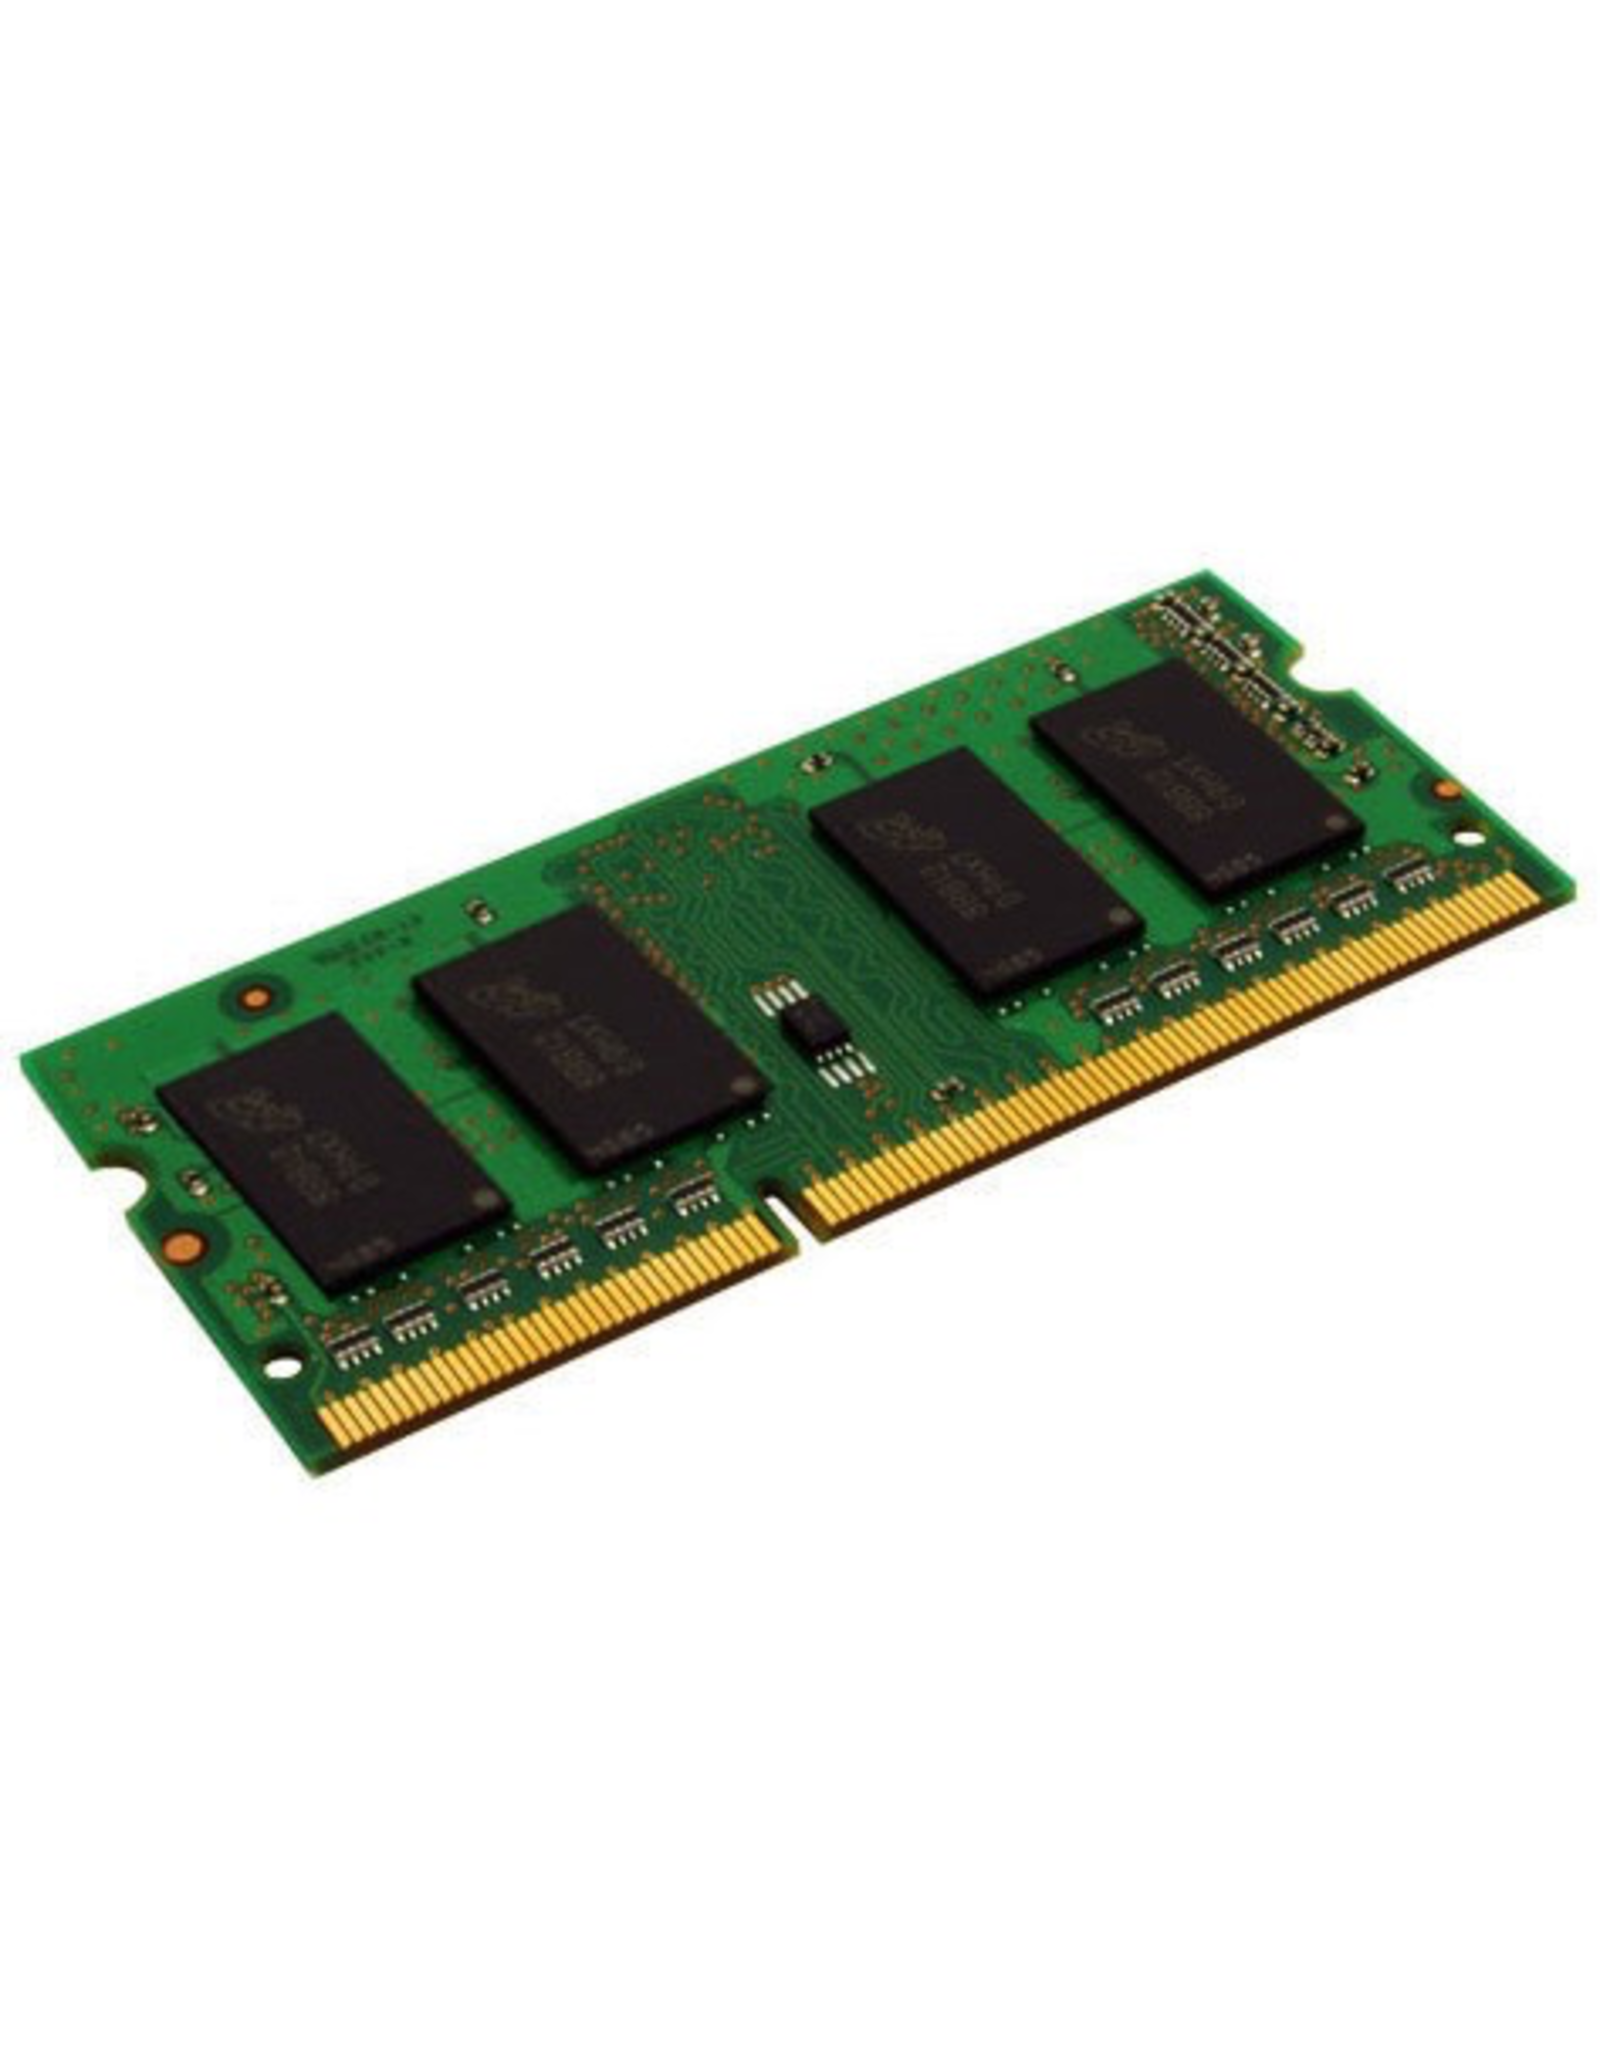 iLove Computers 8GB 1866Mhz (PC15000) DDR3 SODIMM 204 pin RAM Module